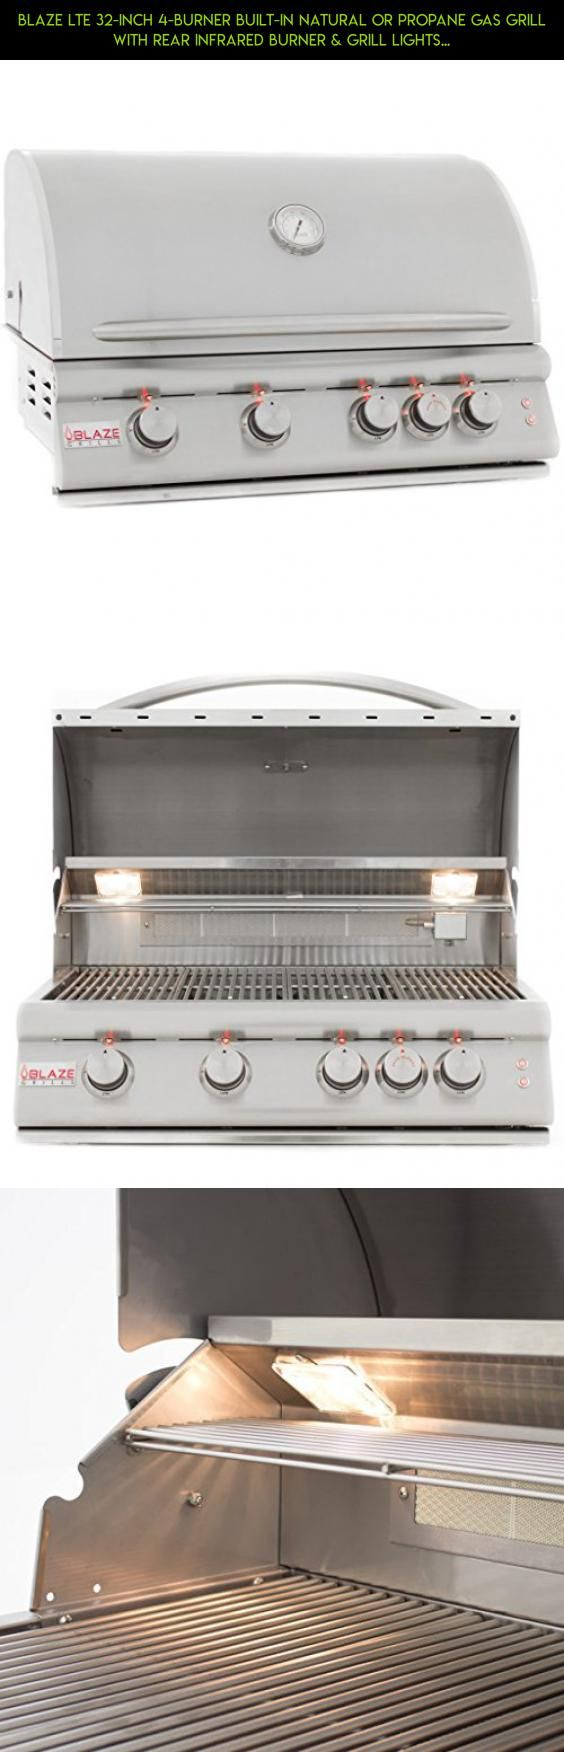 "Blaze LTE 32-Inch 4-Burner Built-In Natural Or Propane Gas Grill With Rear Infrared Burner & Grill Lights - BLZ-4LTE-NG Or BLZ-4LTE-LP - With Free Grill Cover! (32"" Natural Gas) #camera #fpv #racing #gadgets #drone #kit #shopping #tech #plans #products #grills #parts #ng #technology"